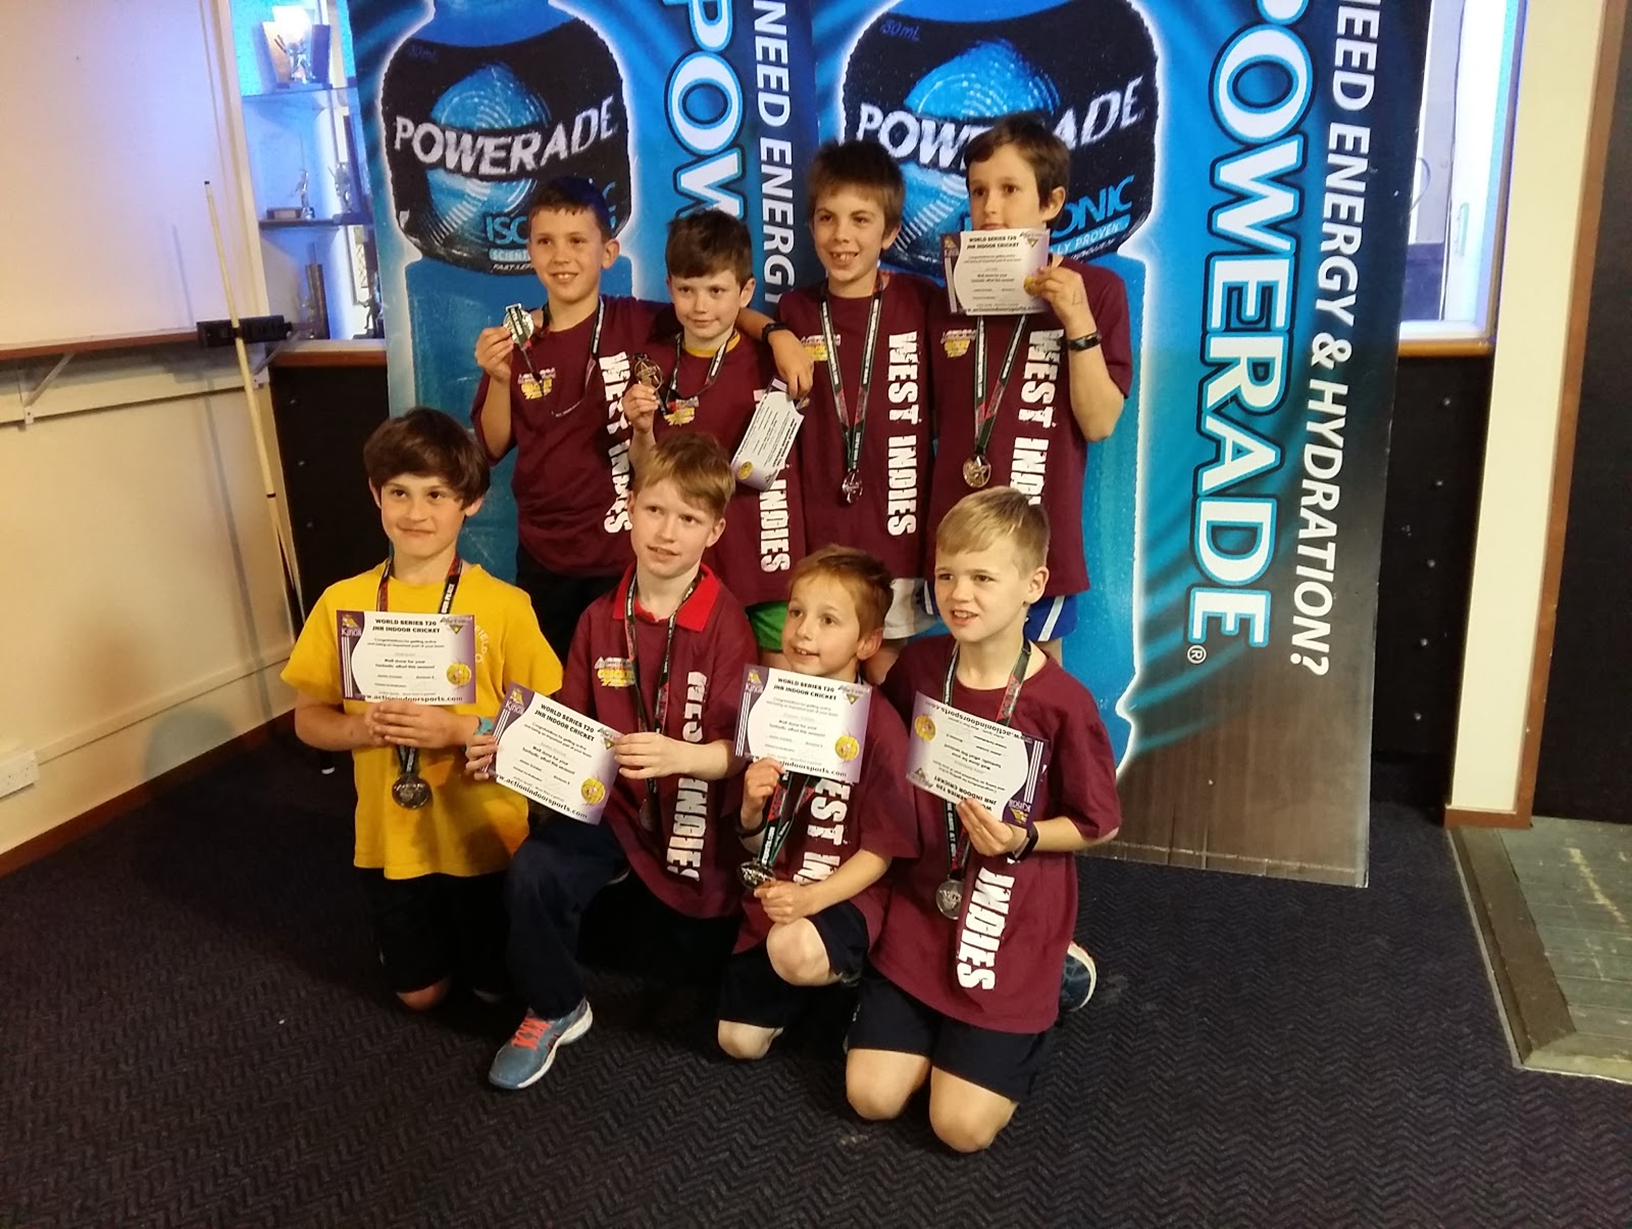 Indoor cricket team the somerfield smashers with their medals and certificates